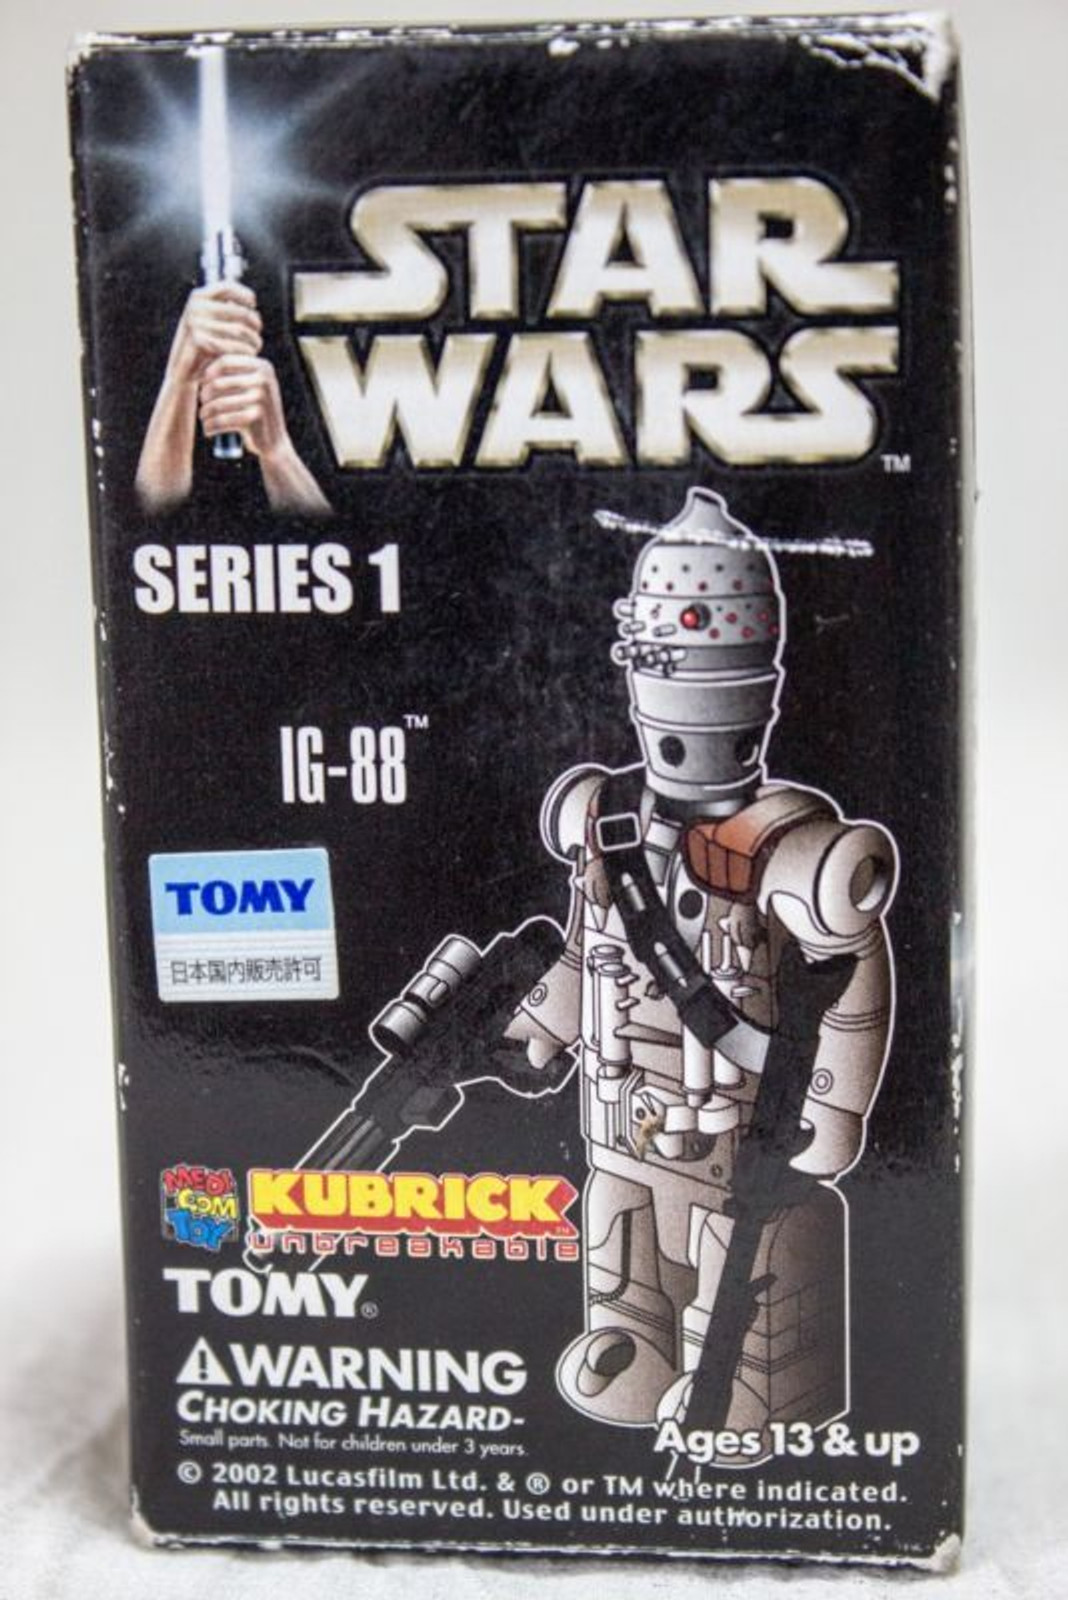 STAR WARS Series 1 IG-88 Kubrick Medicom Toy JAPAN